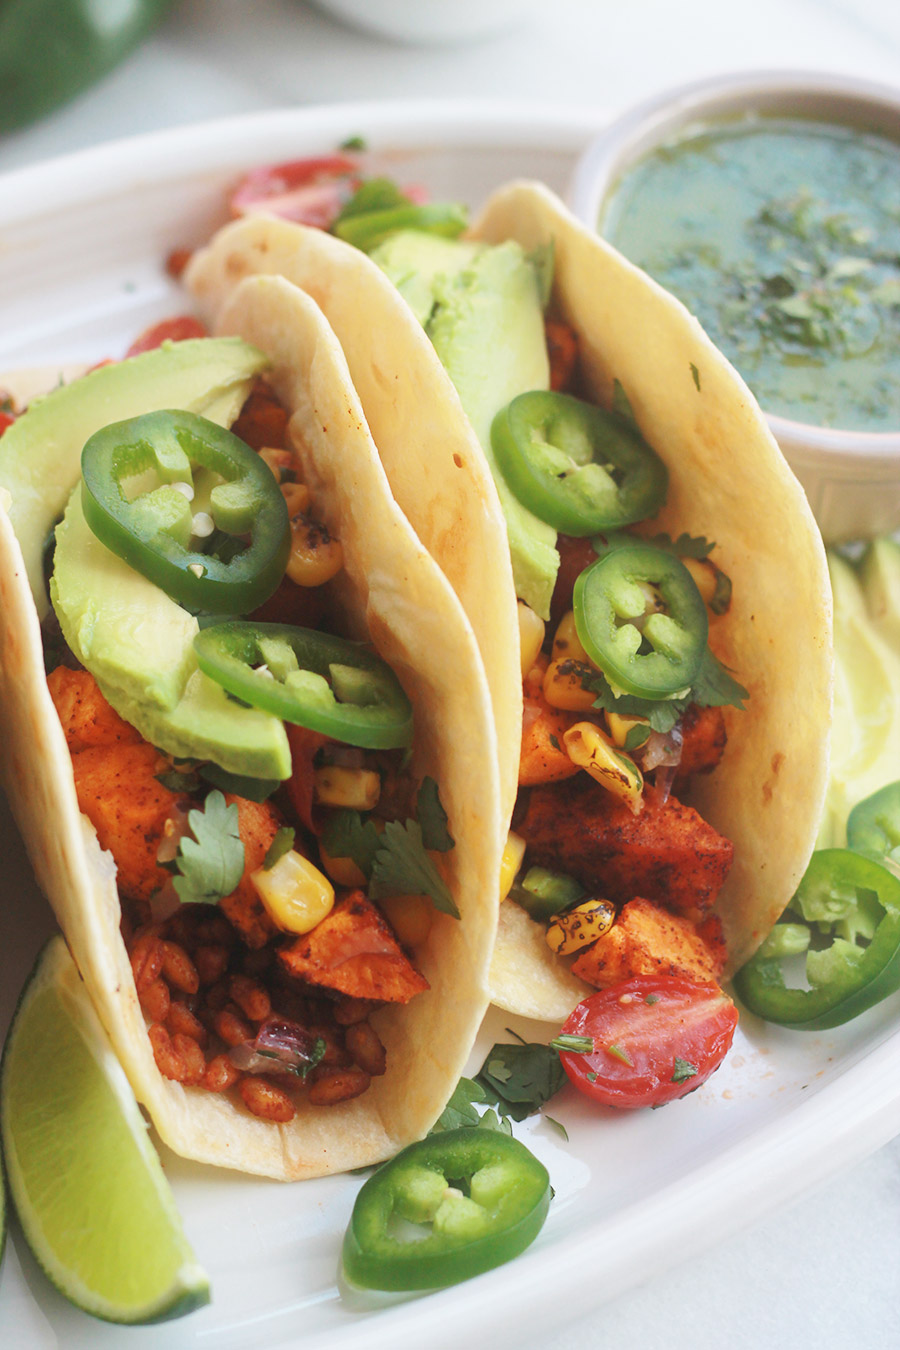 Roasted Sweet Potatoes and Farro Tacos with sliced jalapenos and avocado.